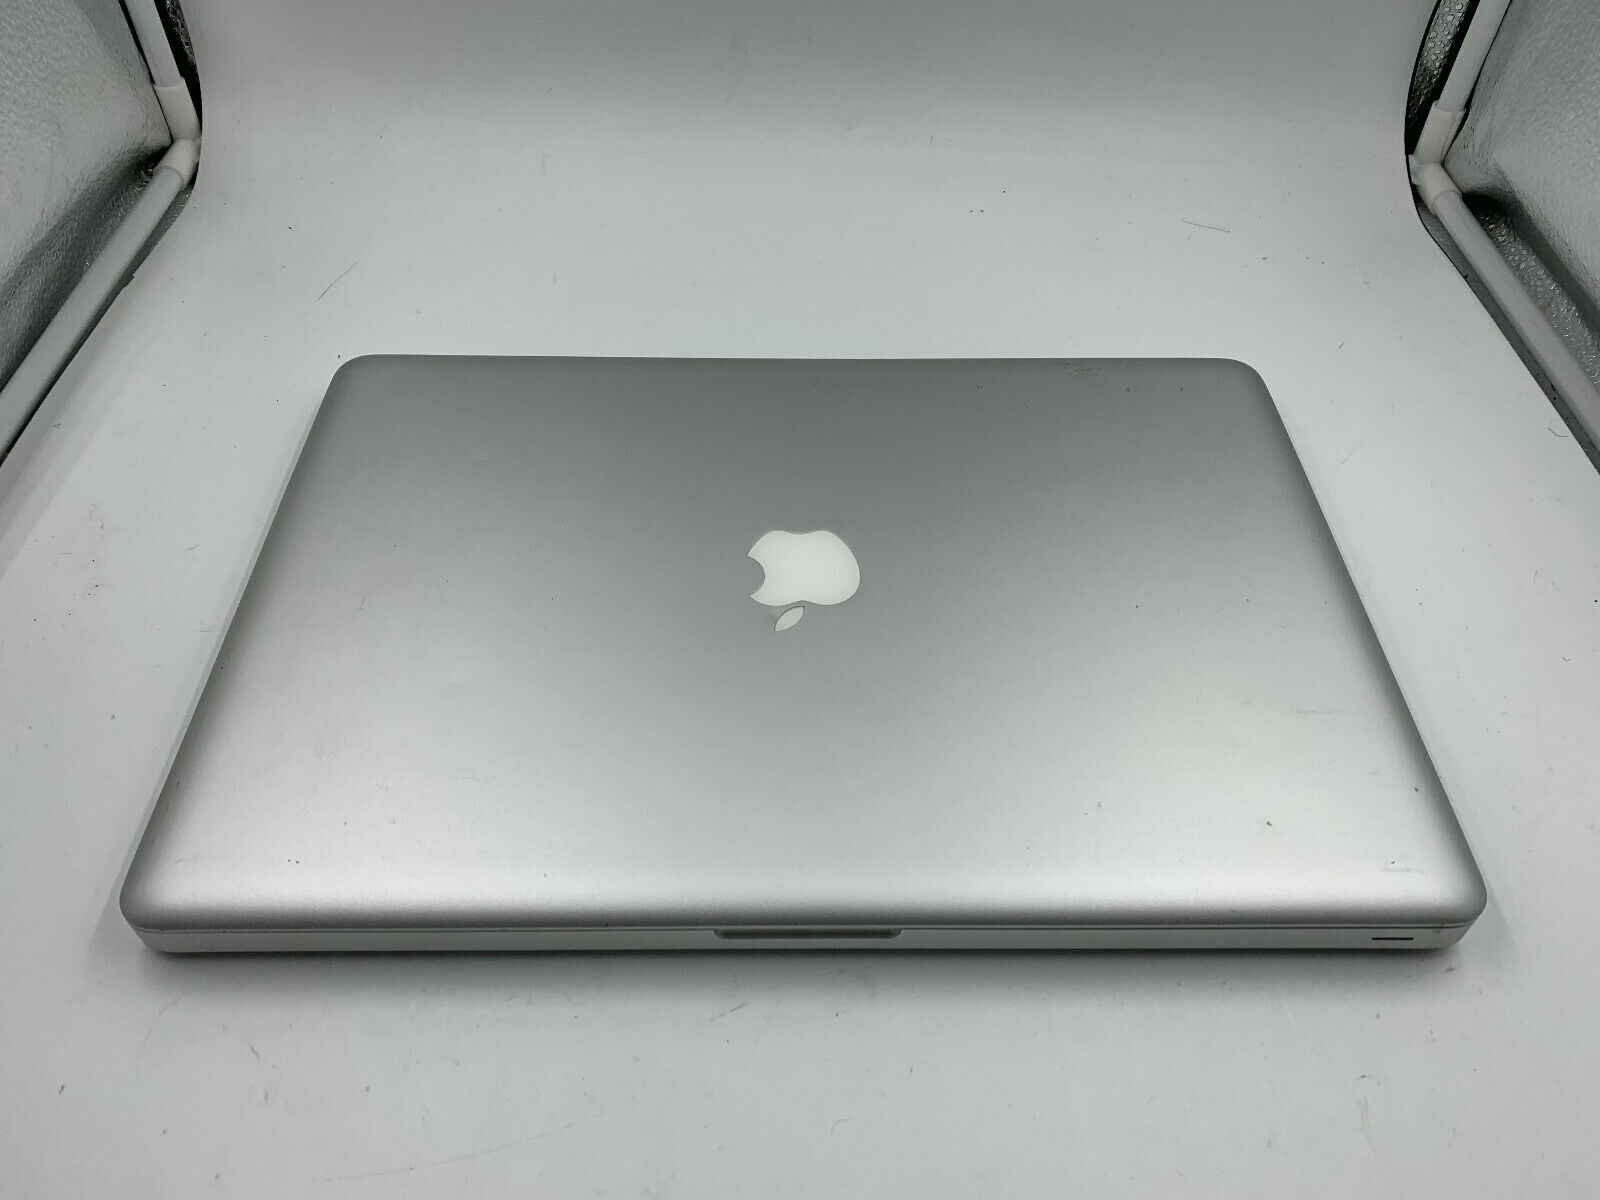 "APPLE MACBOOK PRO 17"" PRE-RETINA ULTRA UPGRADE 8GB RAM 1TB HYBRID SSD WARRANTY"